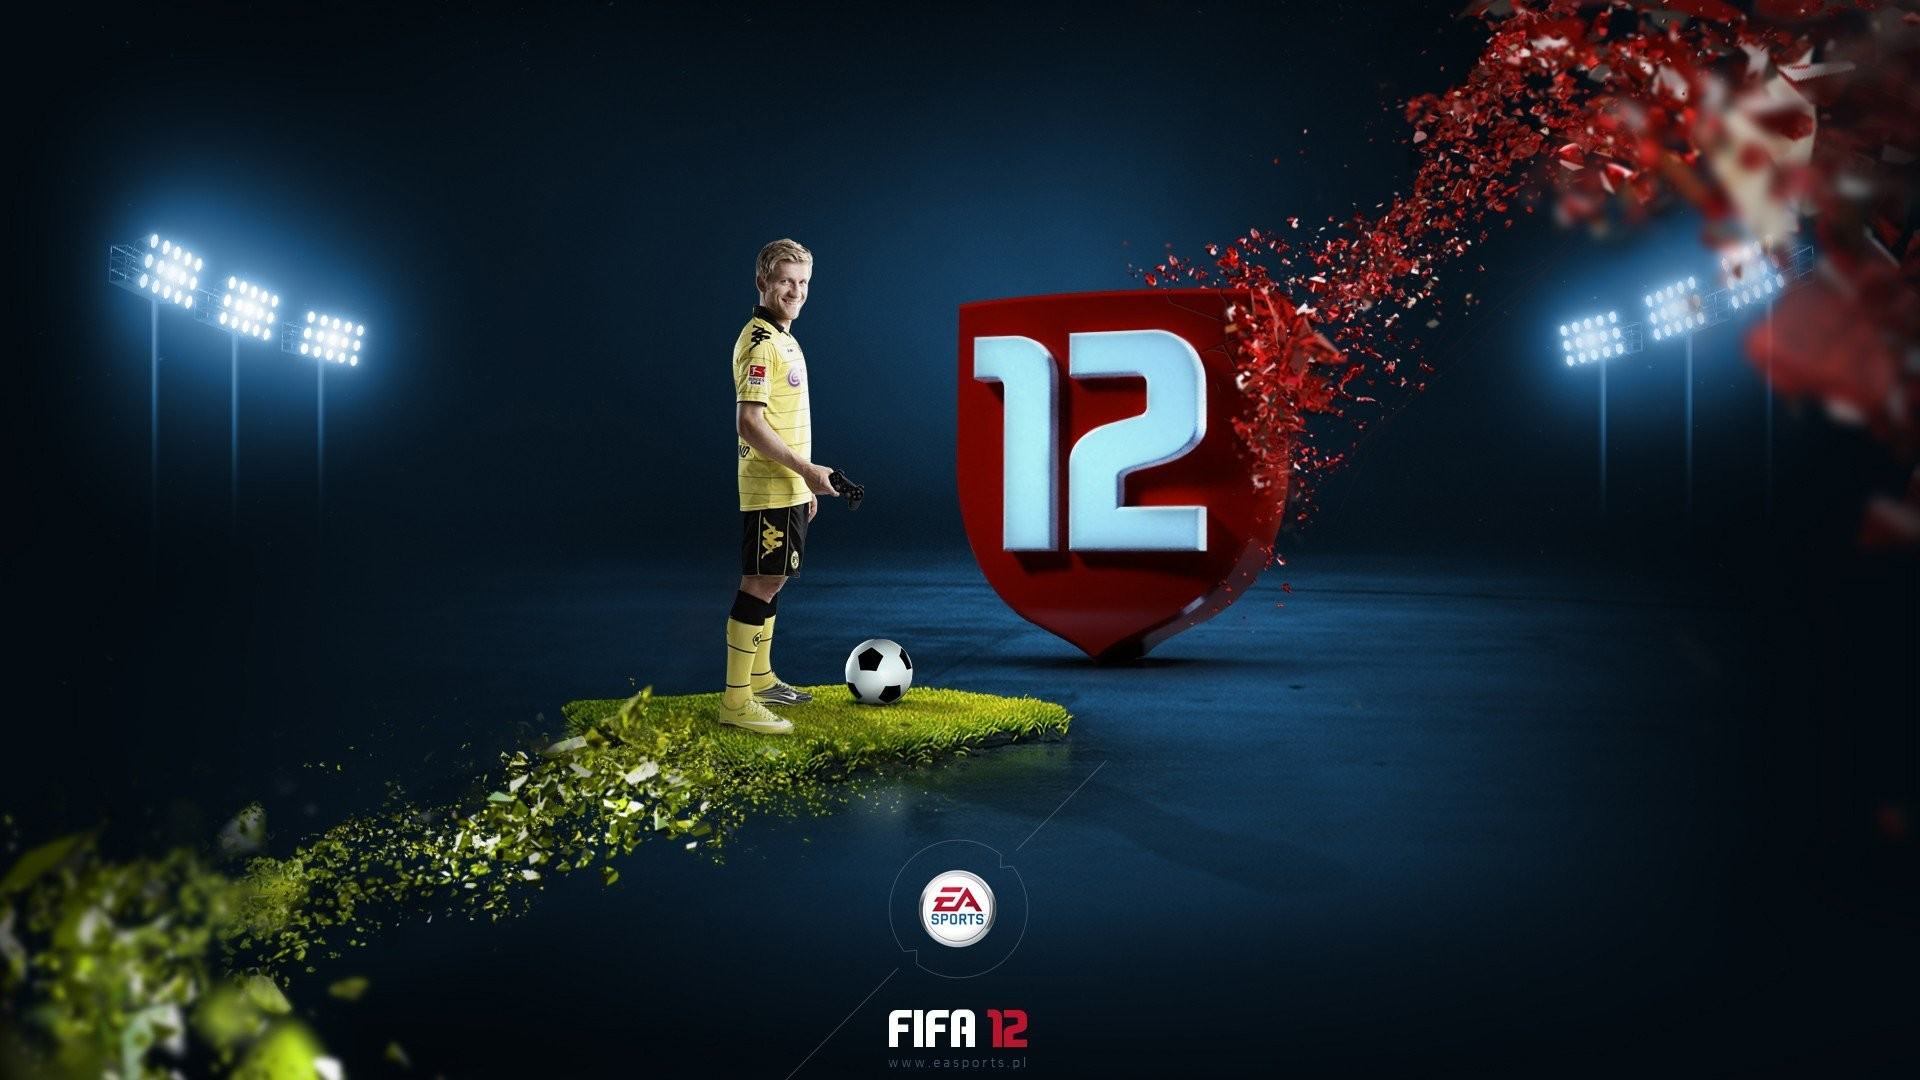 Cool Soccer Picture HD.